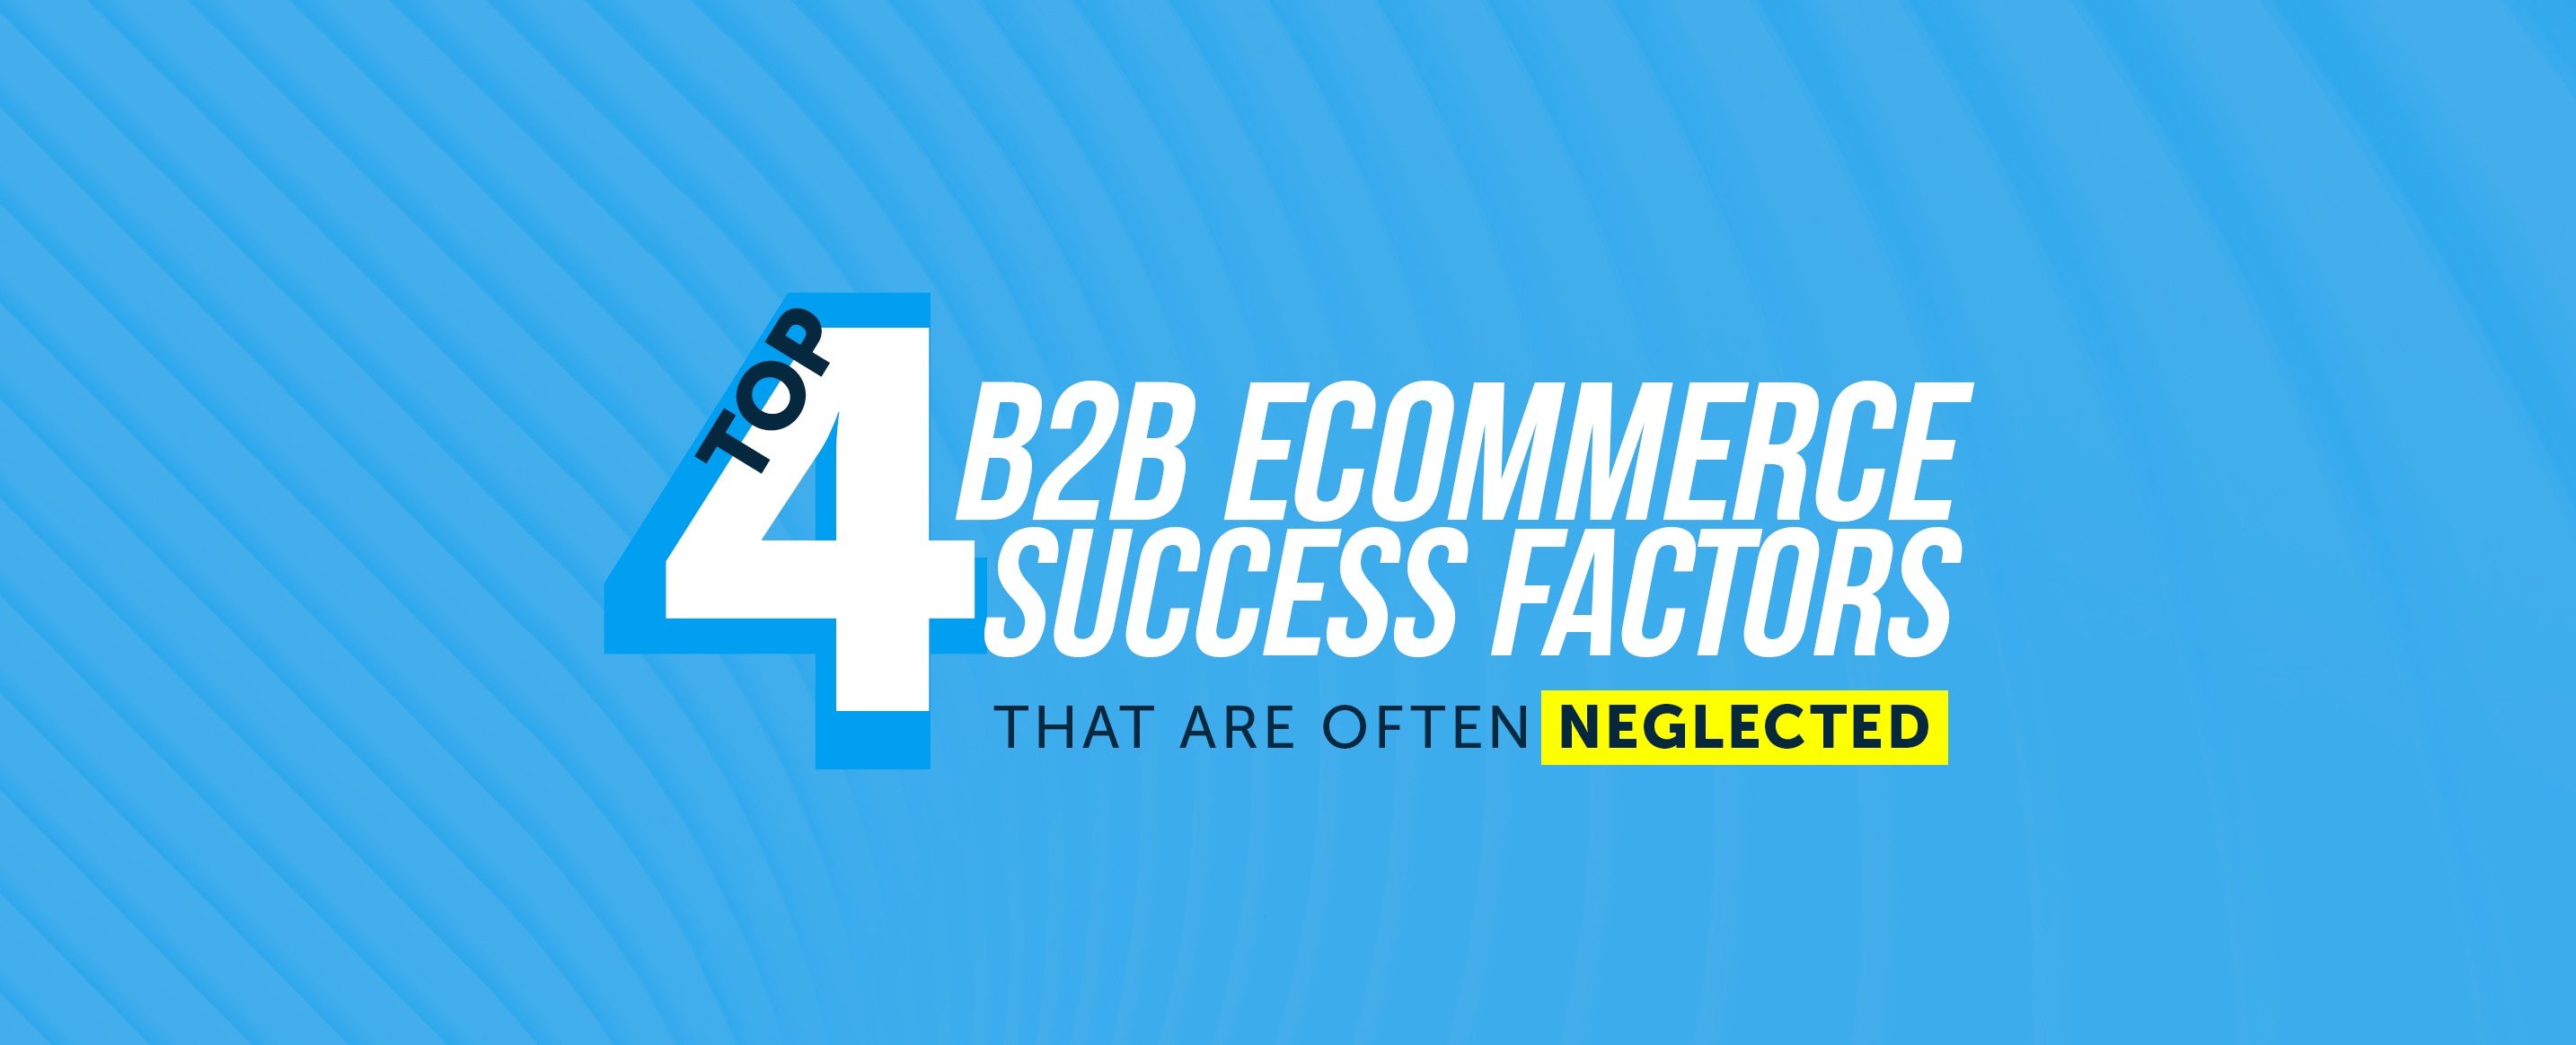 Top-4-B2B-Ecommerce-Success-Factors-That-Are-Often-Neglected